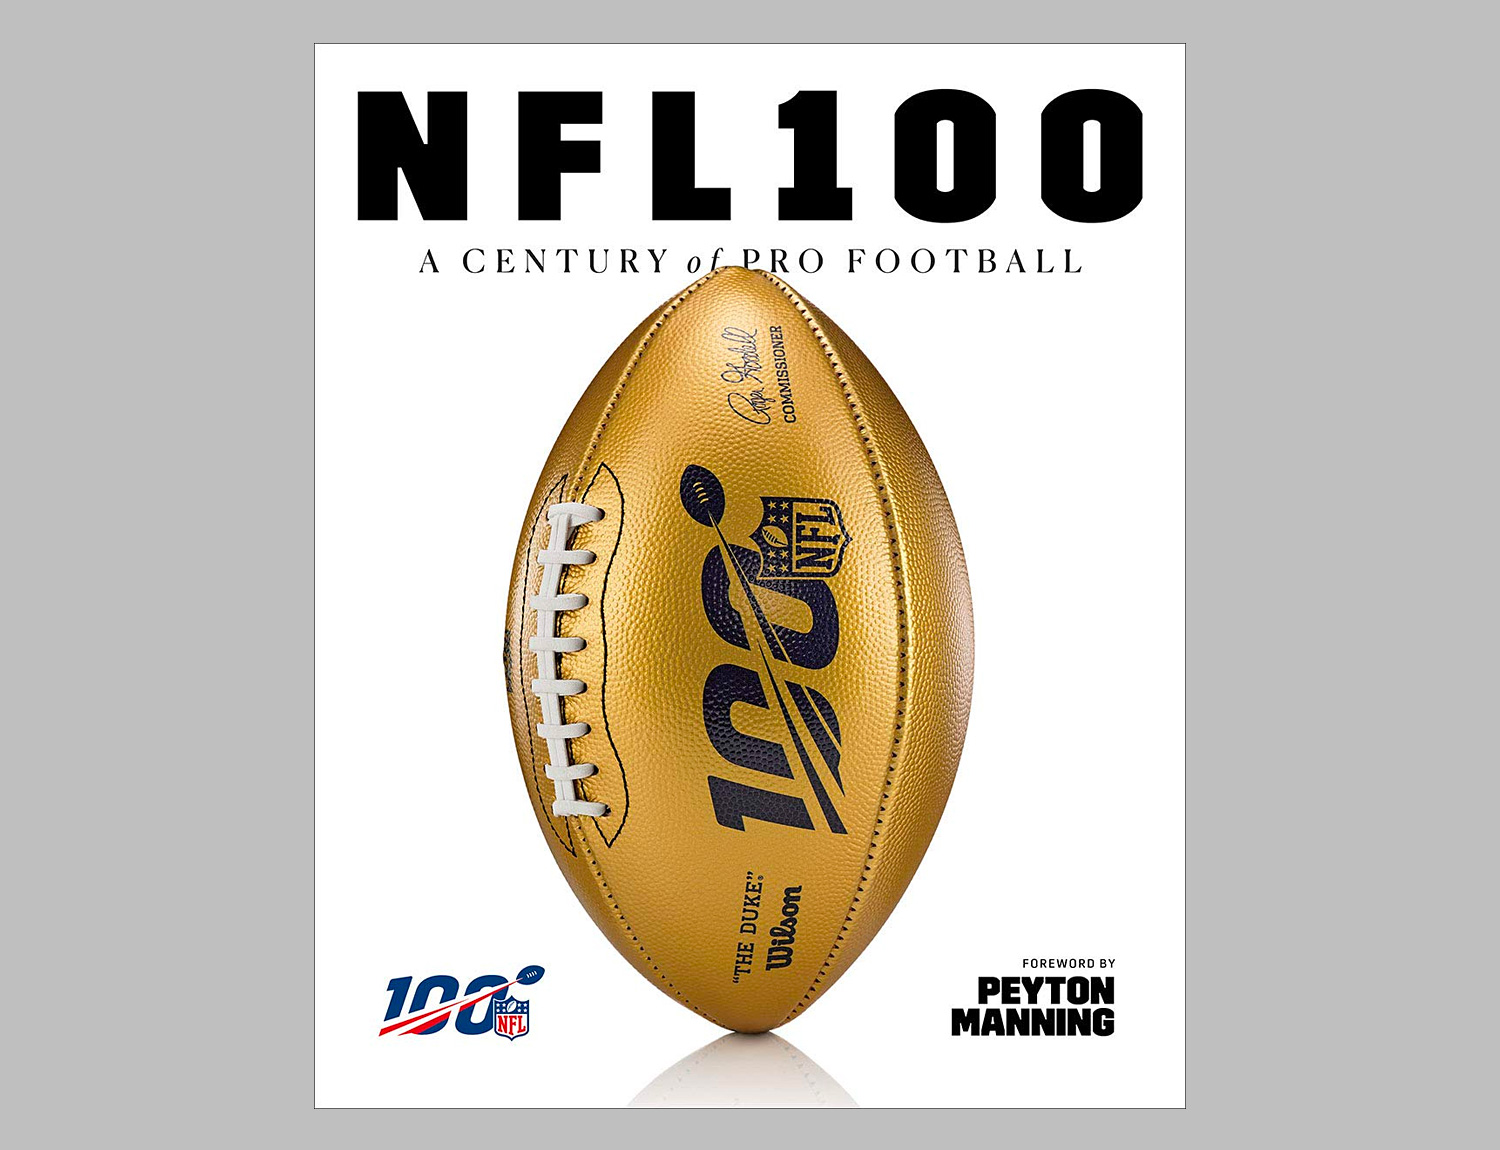 NFL 100: A Century of Pro Football at werd.com